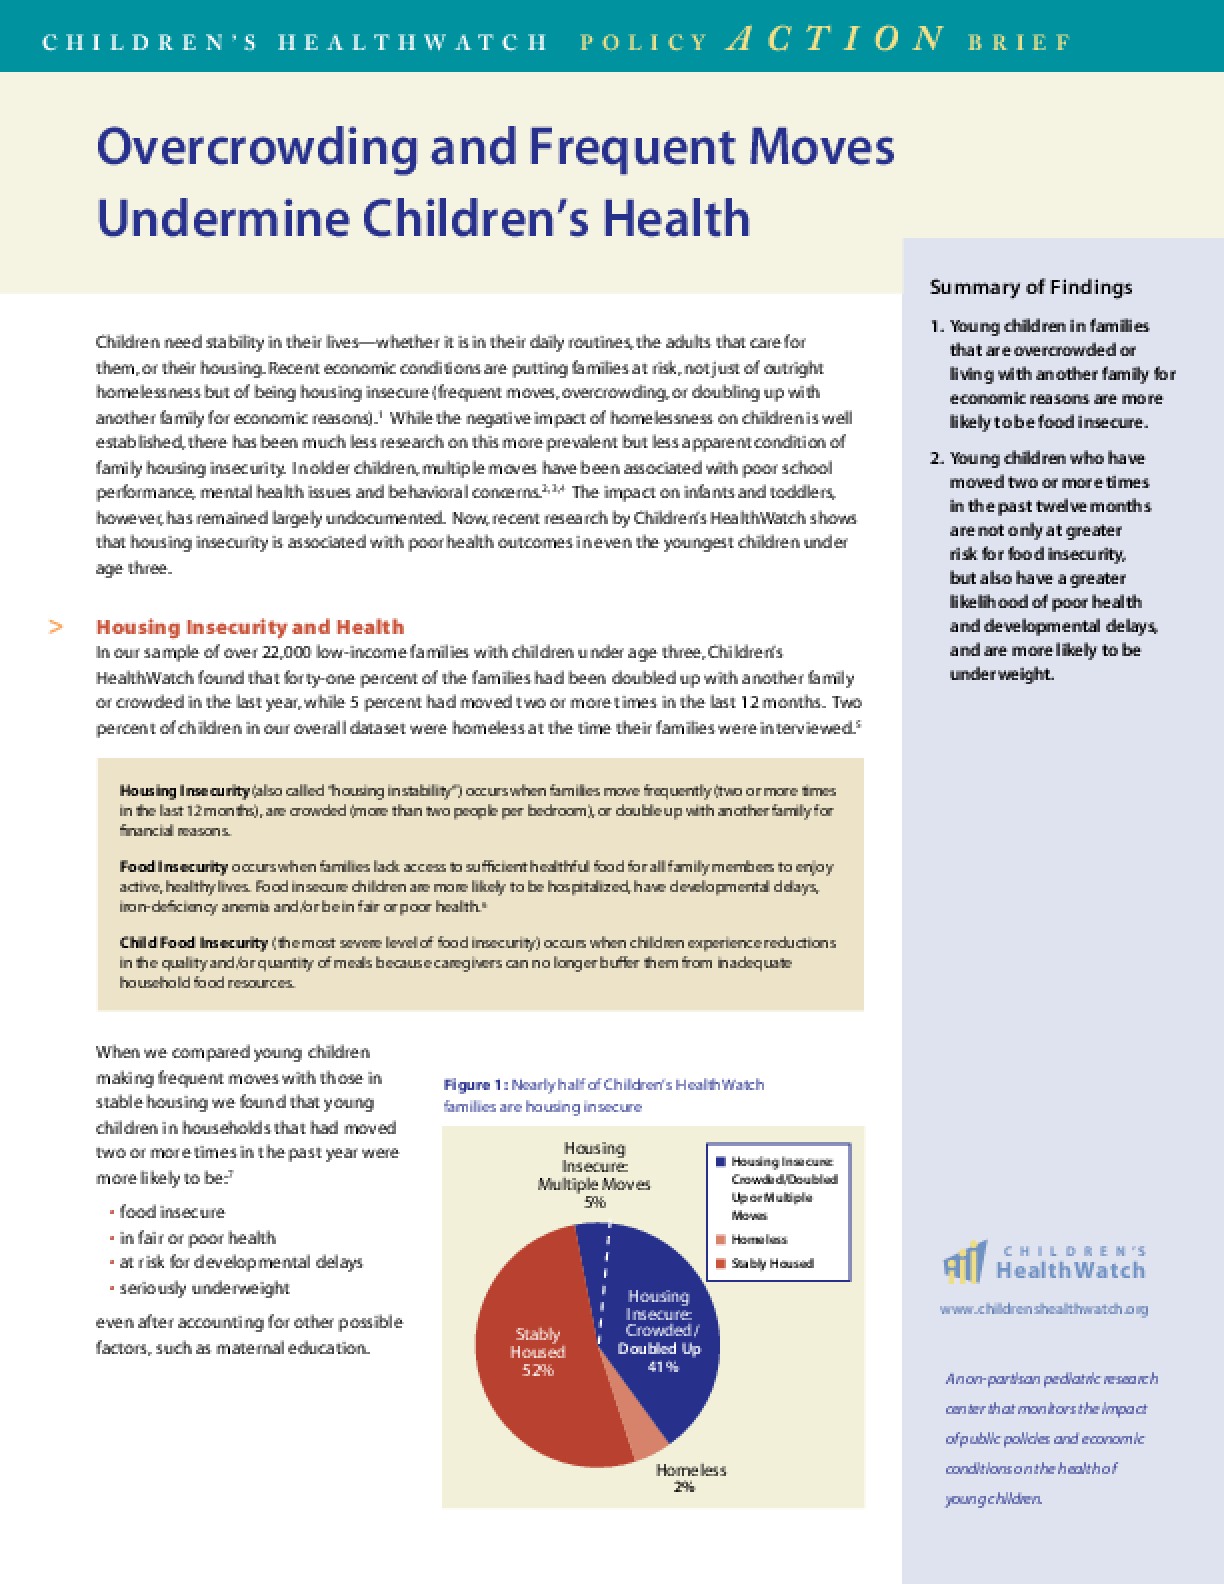 Overcrowding and Frequent Moves Undermine Children's Health